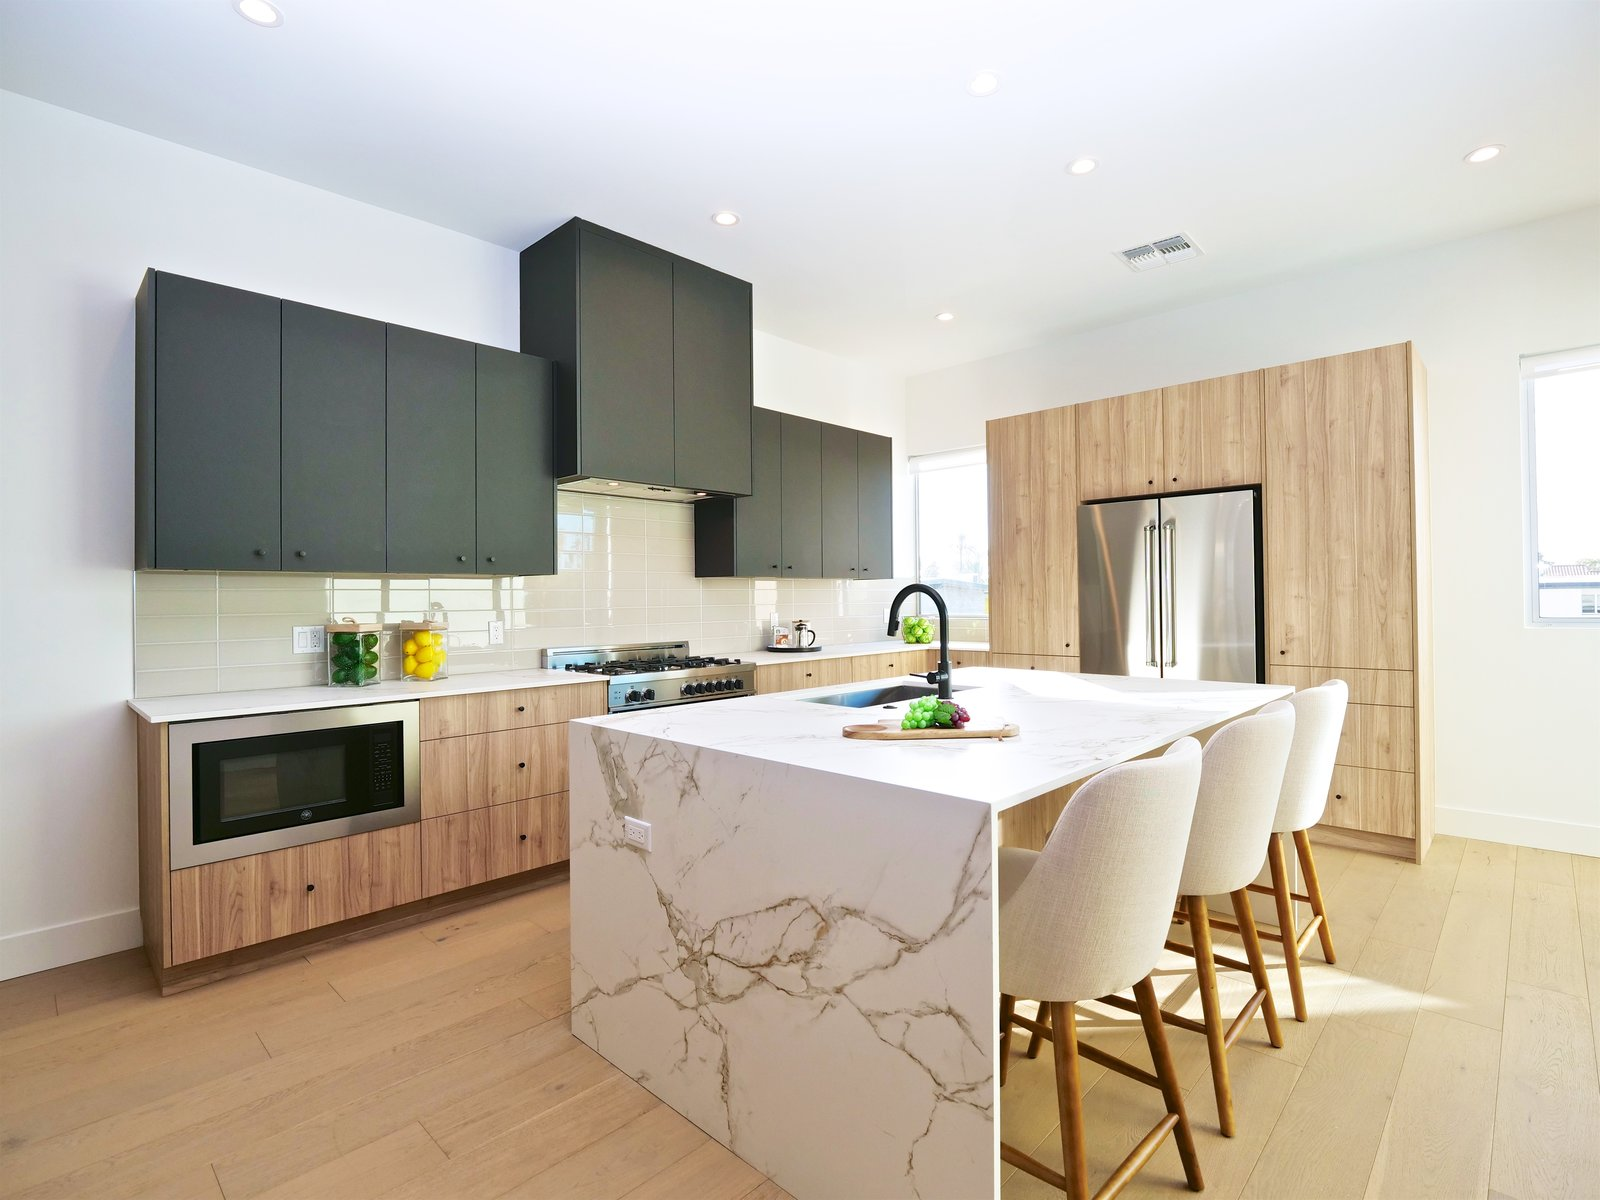 Silestone Dekton countertops, a waterfall island and Bertazzoni appliance package.  Tagged: Kitchen, Medium Hardwood Floor, Ceiling Lighting, Refrigerator, Range, Microwave, Engineered Quartz Counter, Wood Cabinet, Undermount Sink, and Dishwasher.  Stacks Modern by Chris Morrison